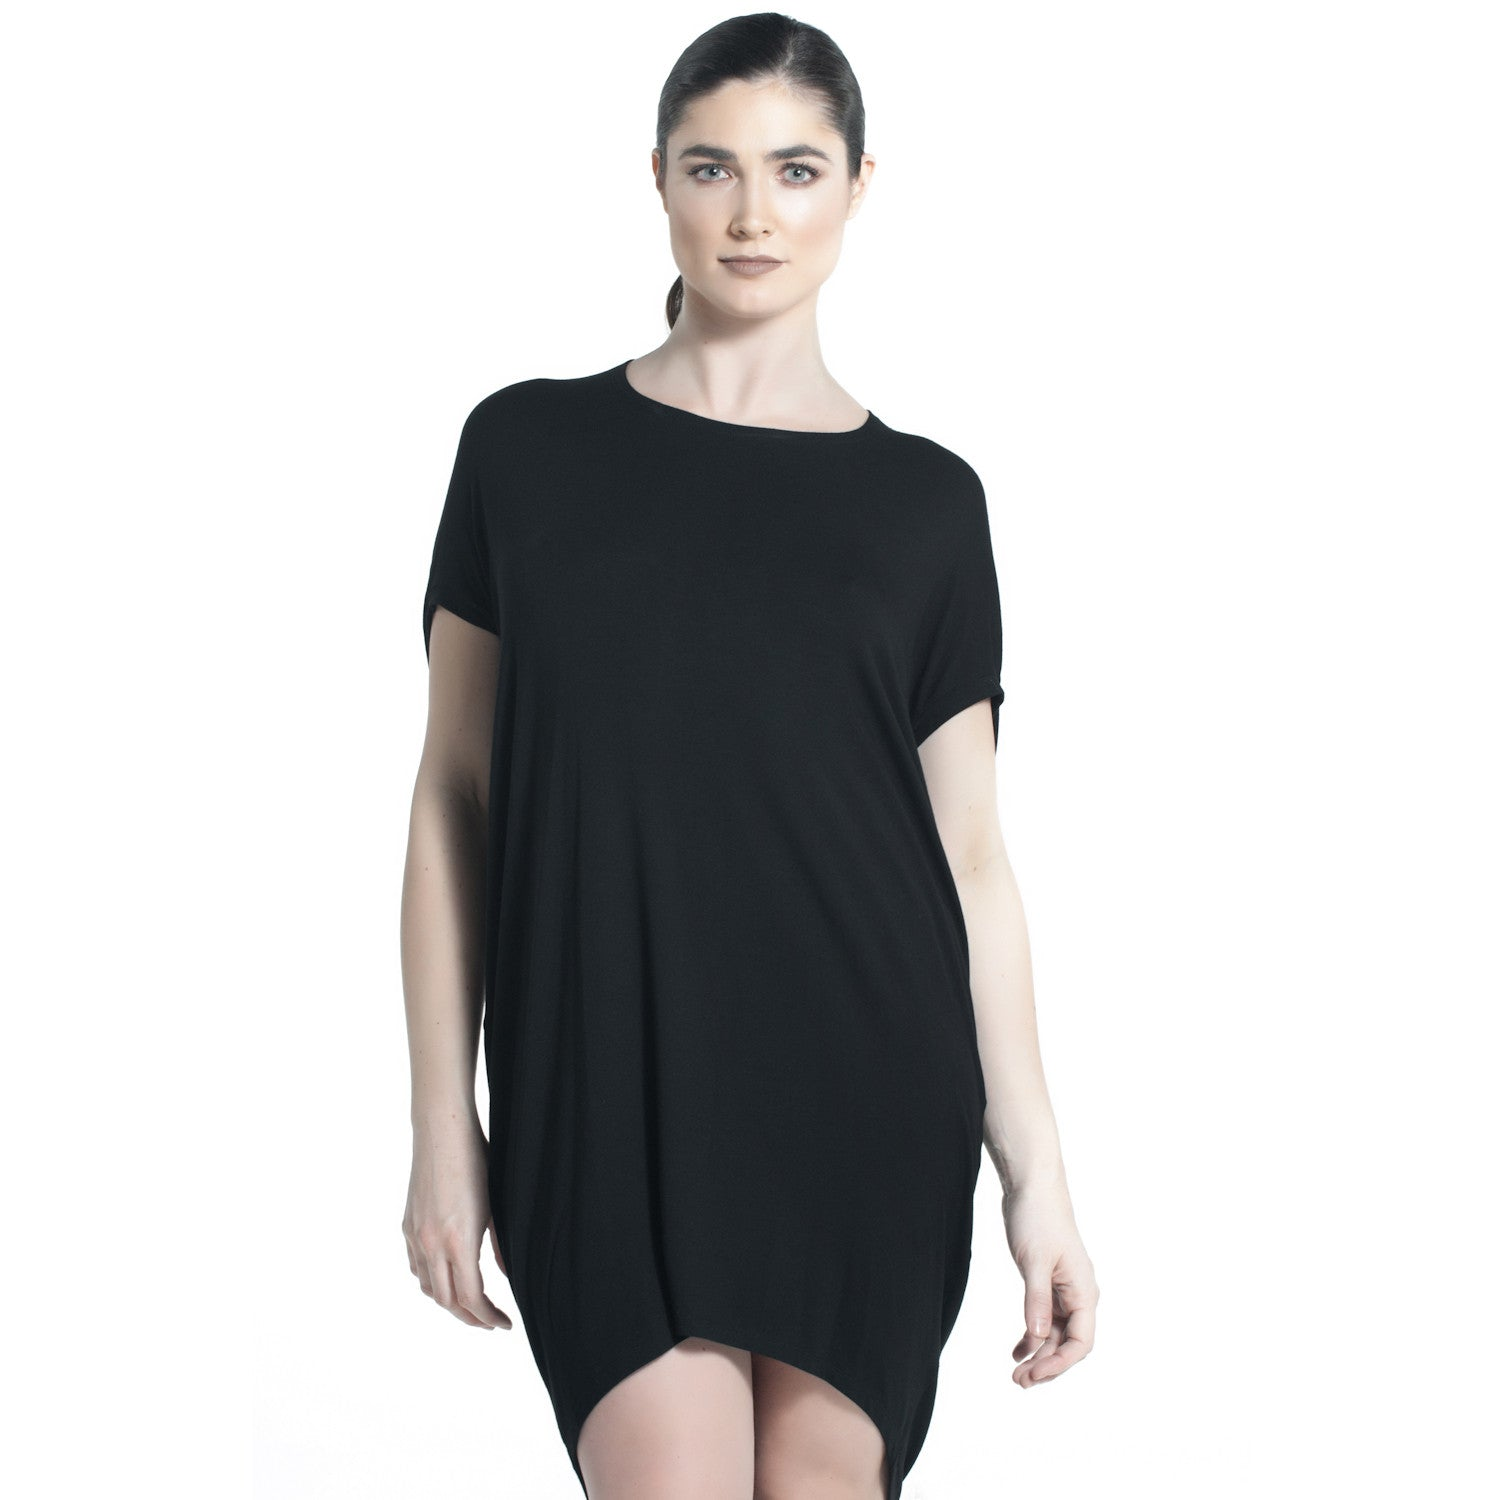 JERSEY DRAPE DRESS IN BLACK